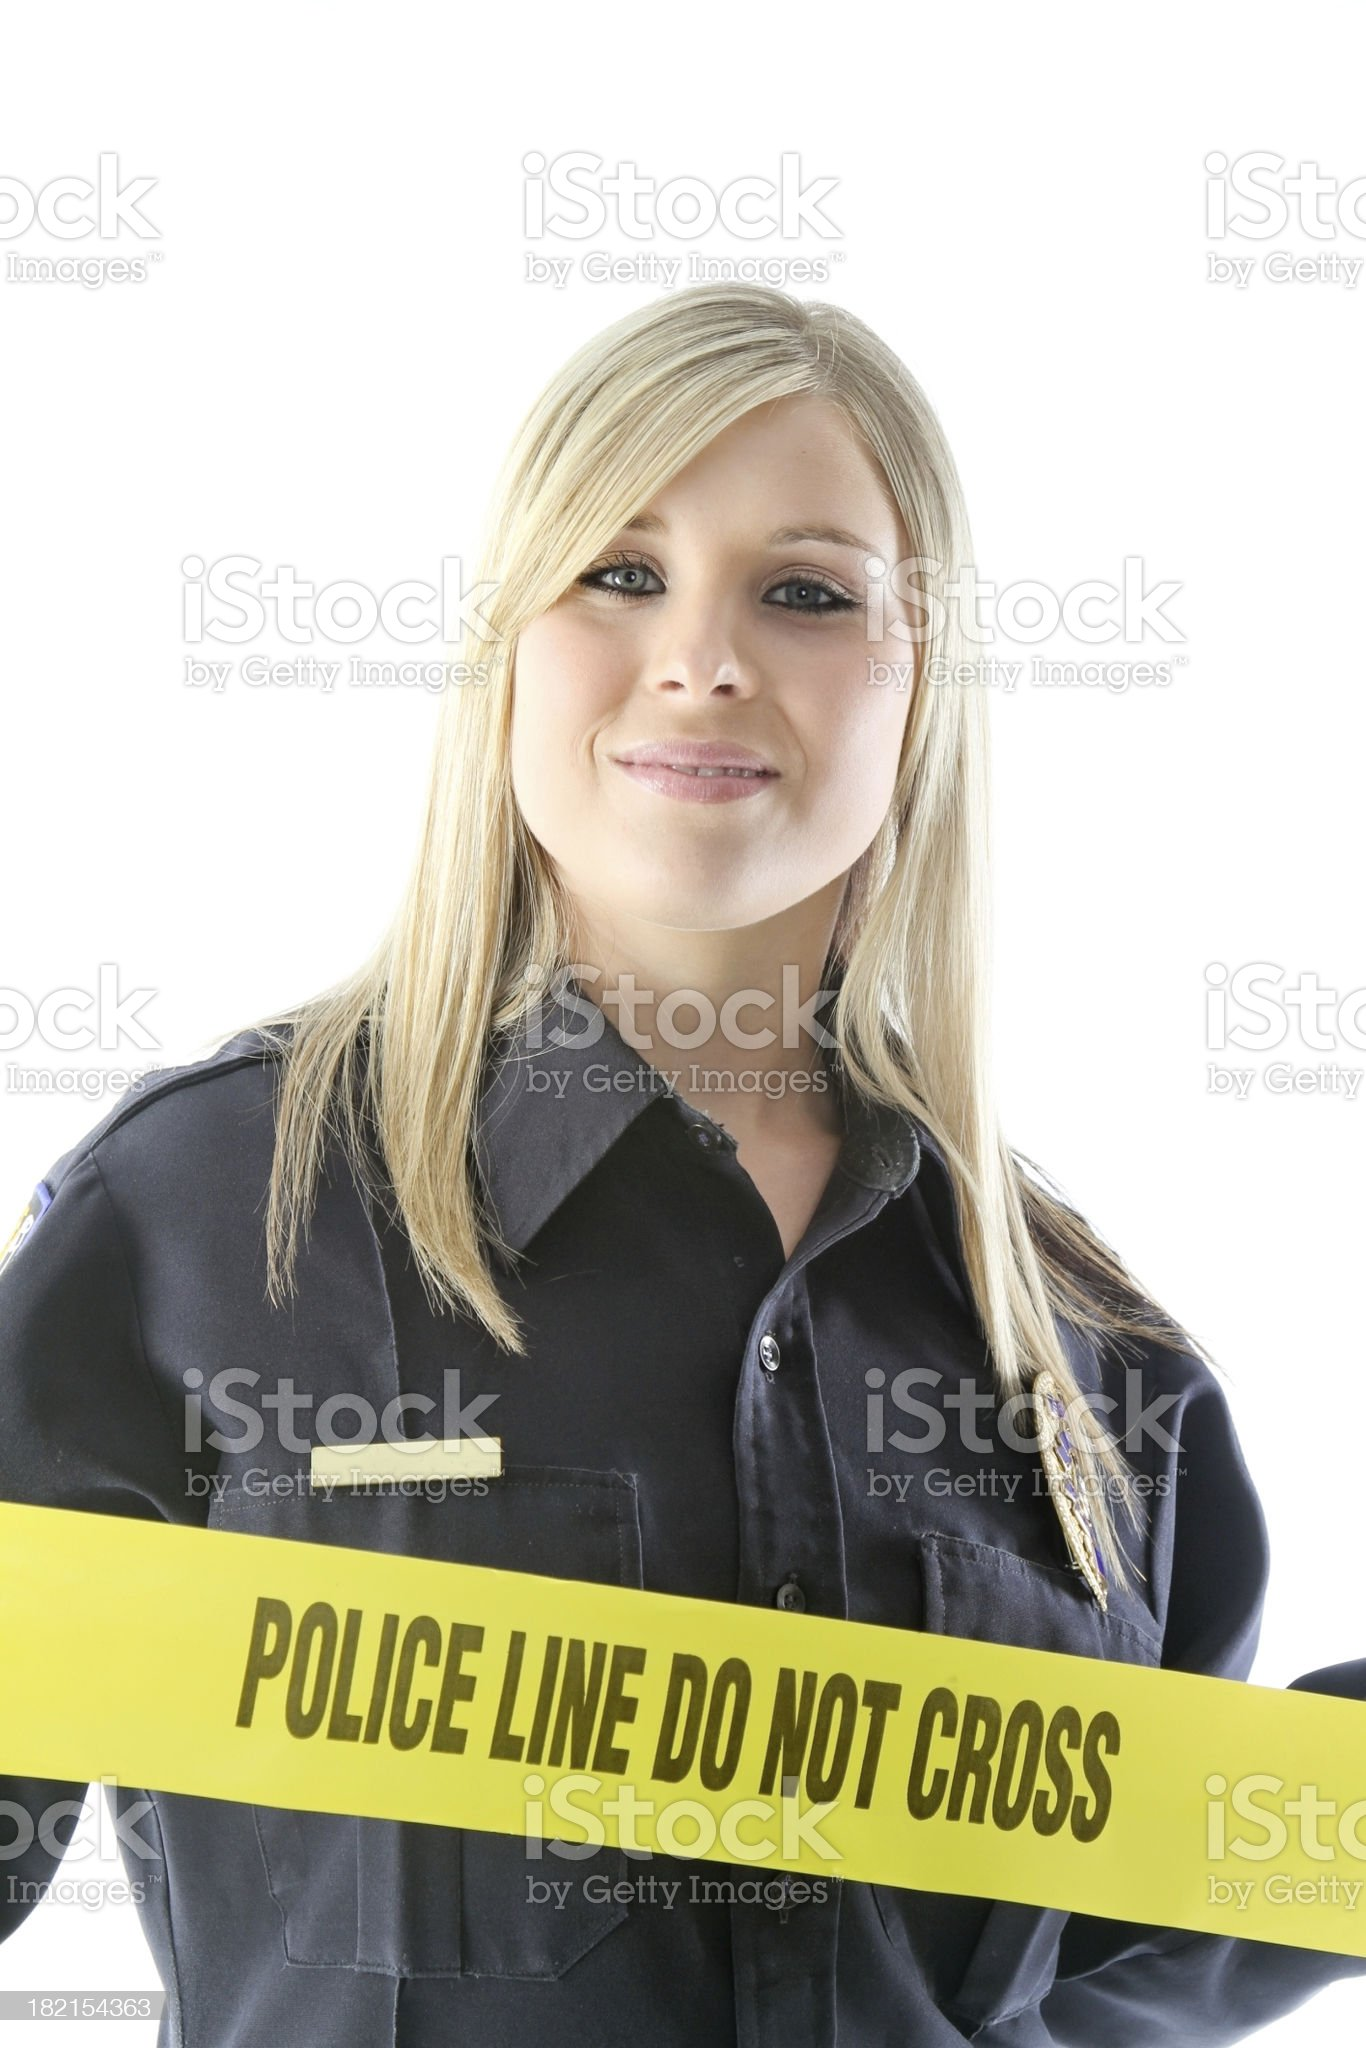 Police Officer with Evidence tape royalty-free stock photo